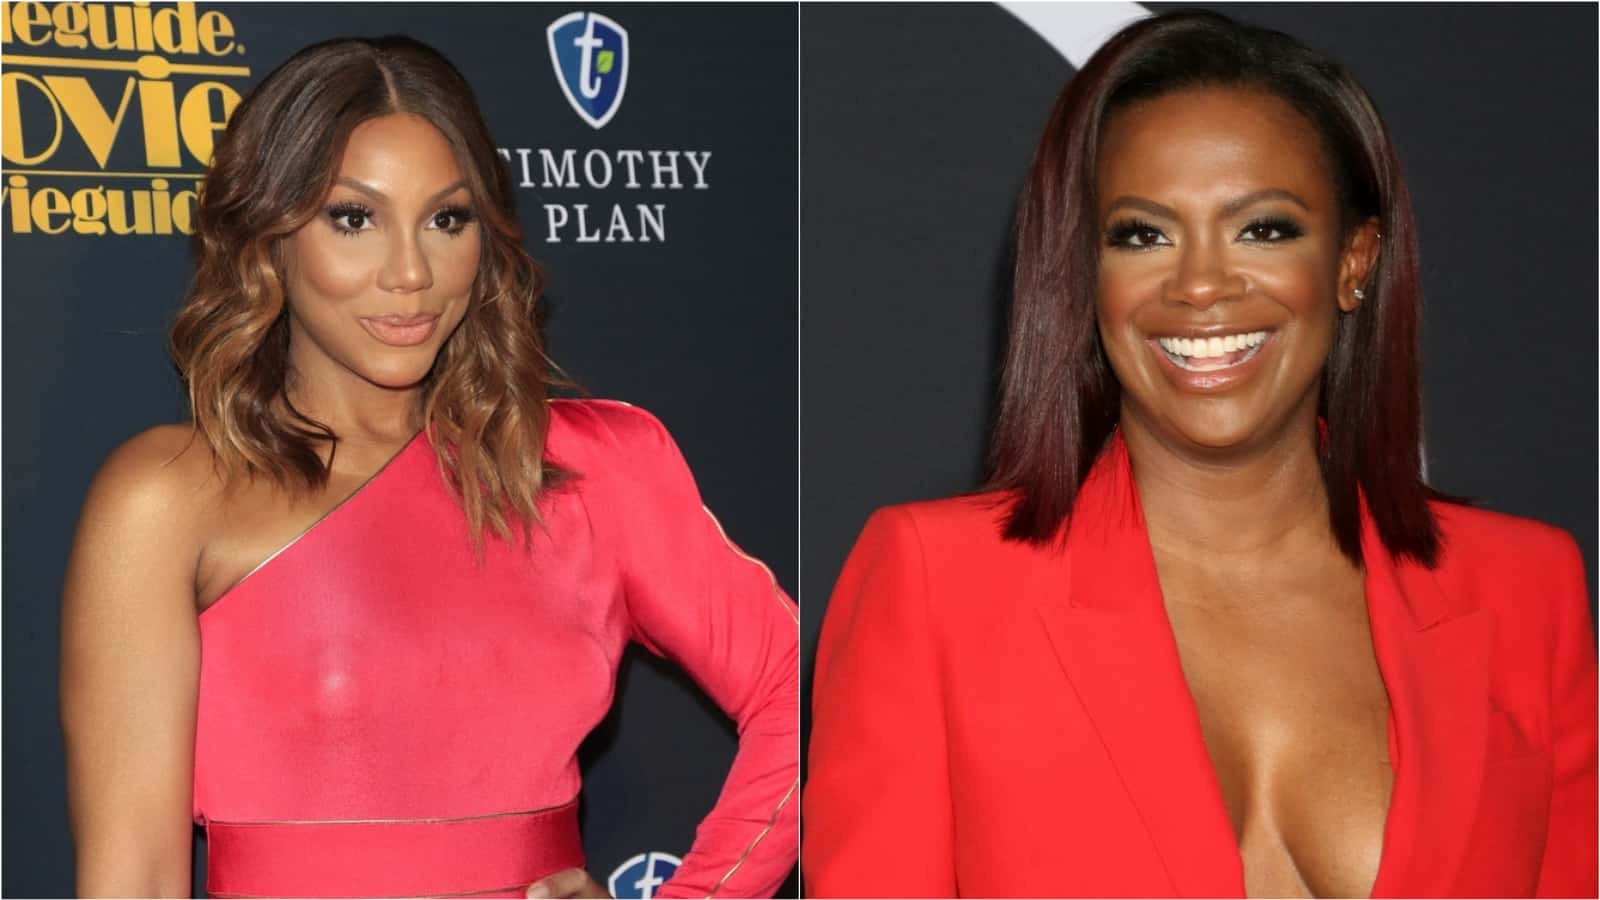 Tamar Braxton Gushes Over Kandi Burruss For Her Birthday With The Raciest Video - Fans Gush Over Tamar's Cellulite And Praise Kandi's Dance